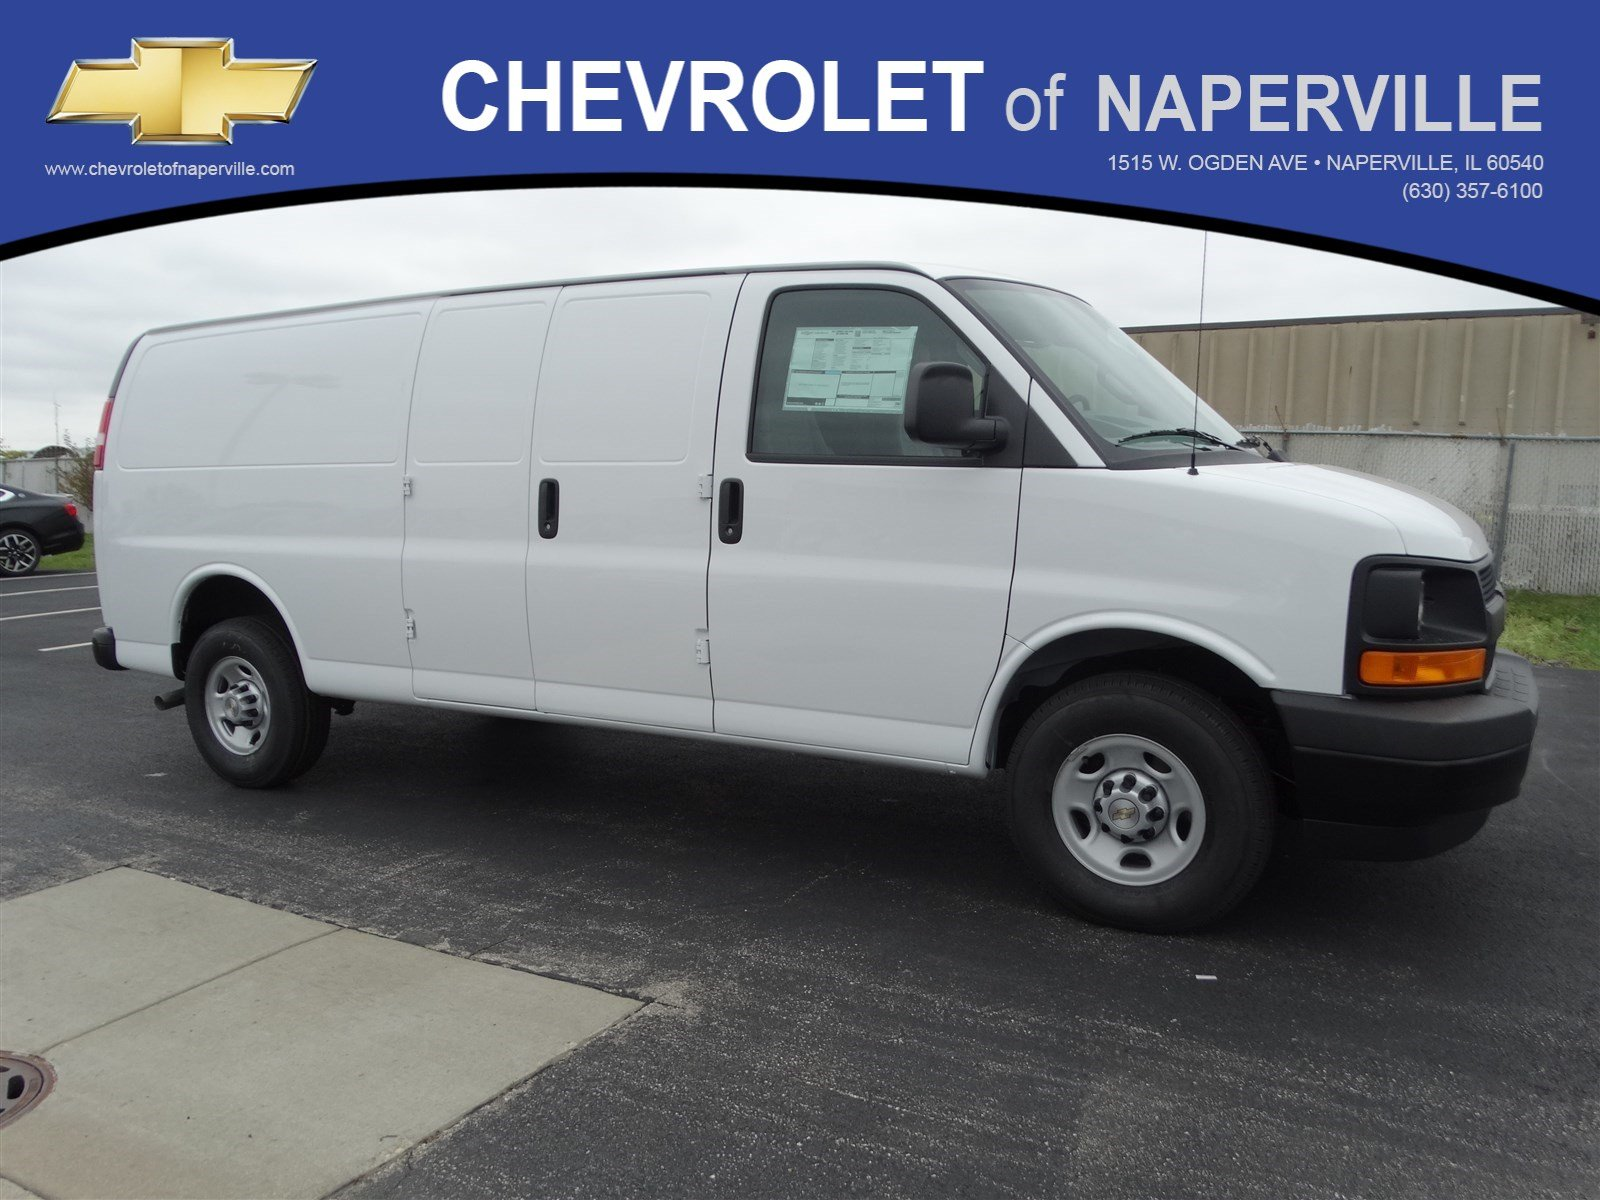 Chevrolet Of Naperville >> New 2017 Chevrolet Express Cargo Van Full-size Cargo Van in Naperville #T5919 | Chevrolet of ...